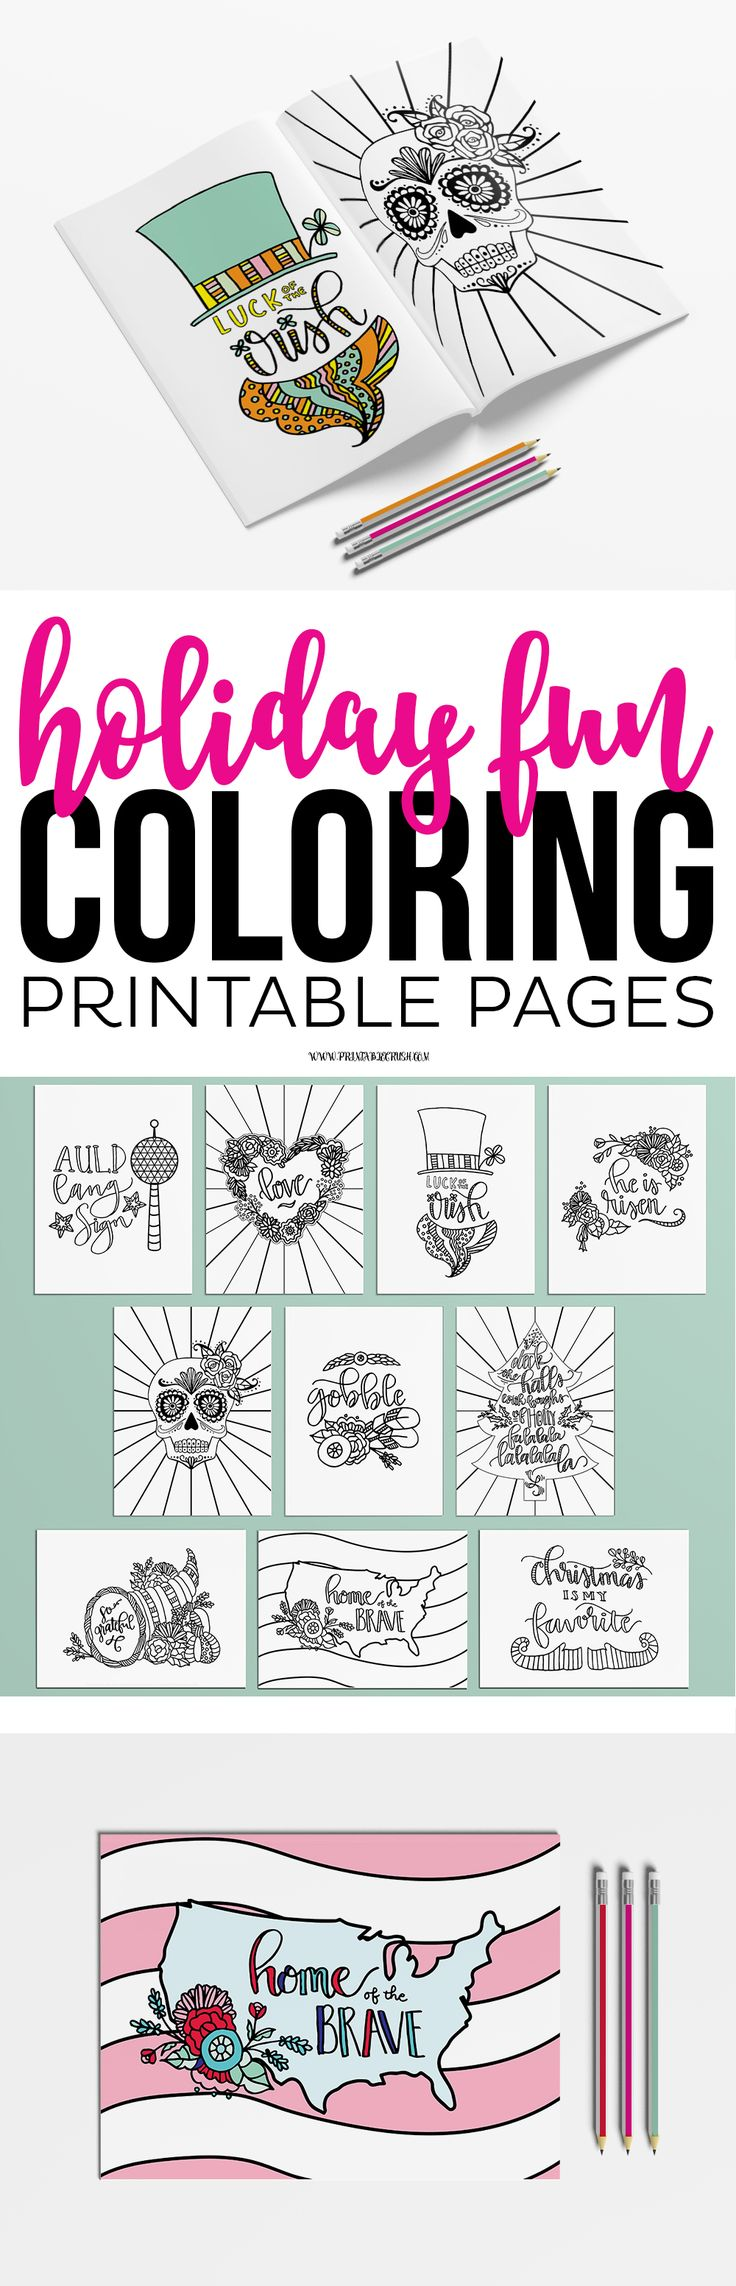 book color me beautiful : Enjoy Coloring These Holiday Coloring Pages For Adults Or Kids Includes 10 Pages For The